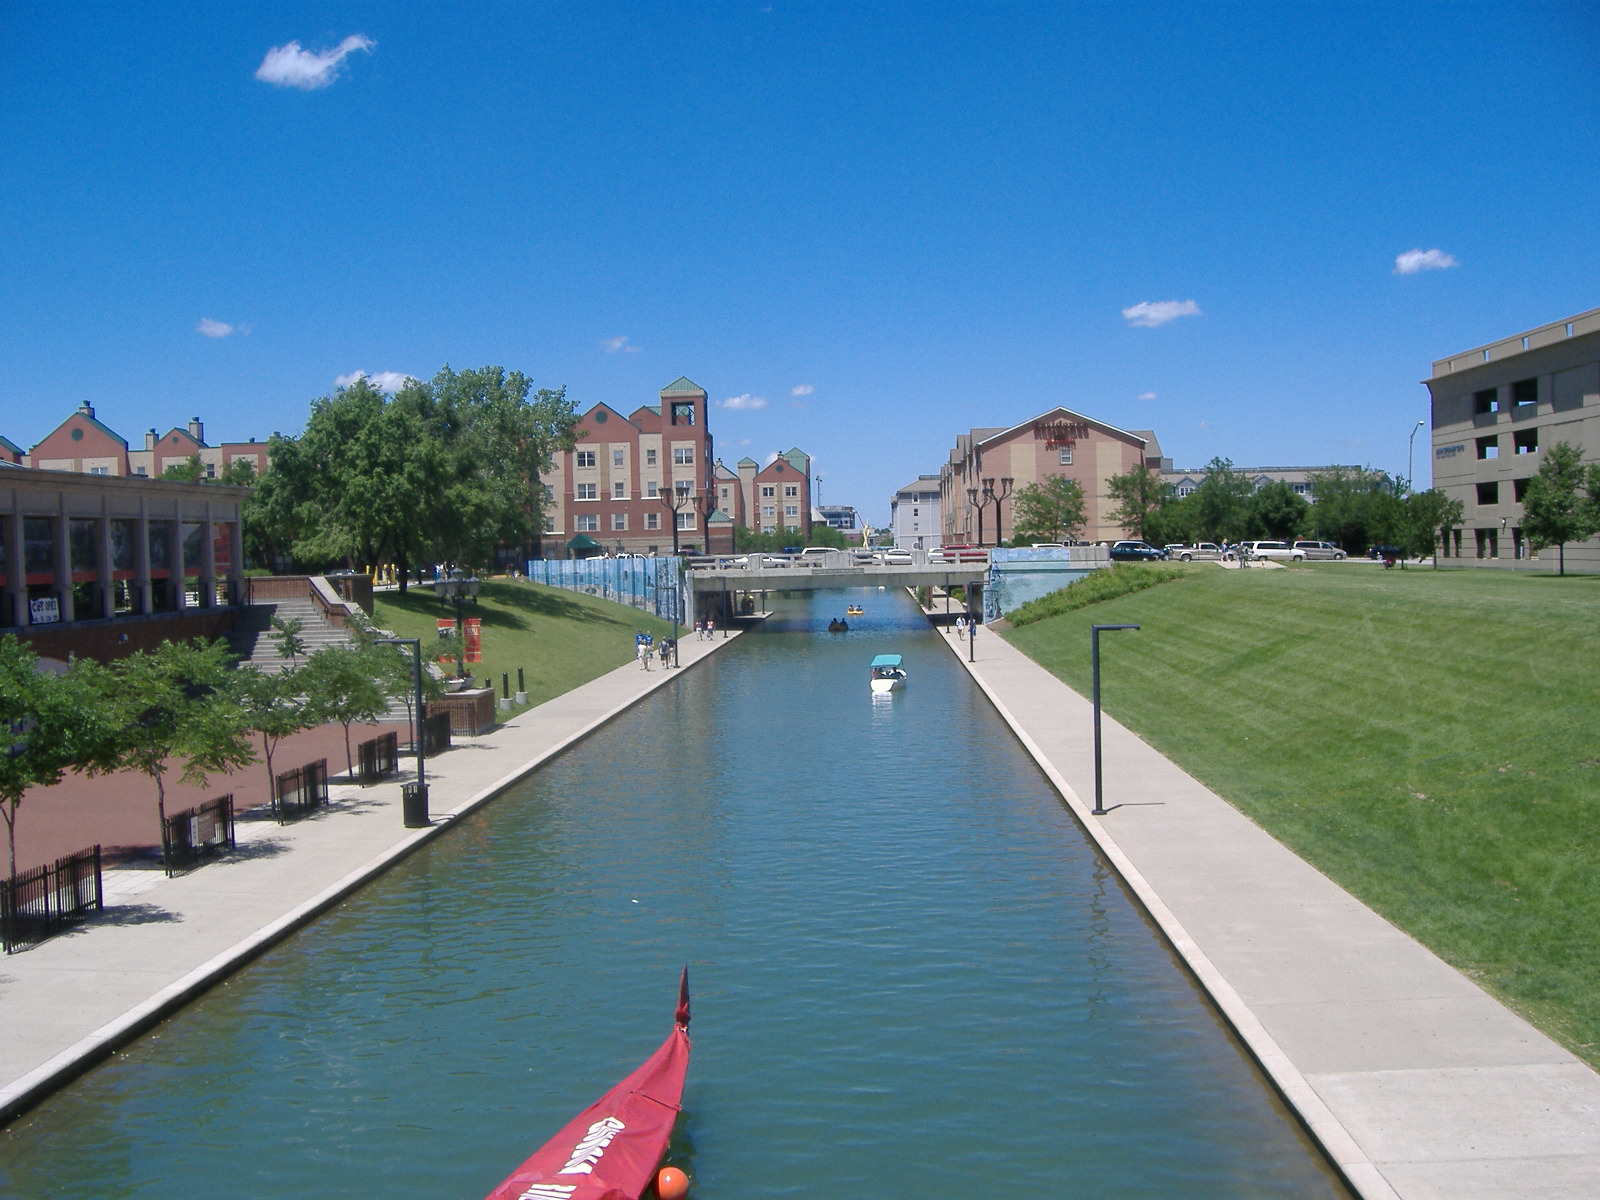 The canal as it passes the Indiana Historical Society